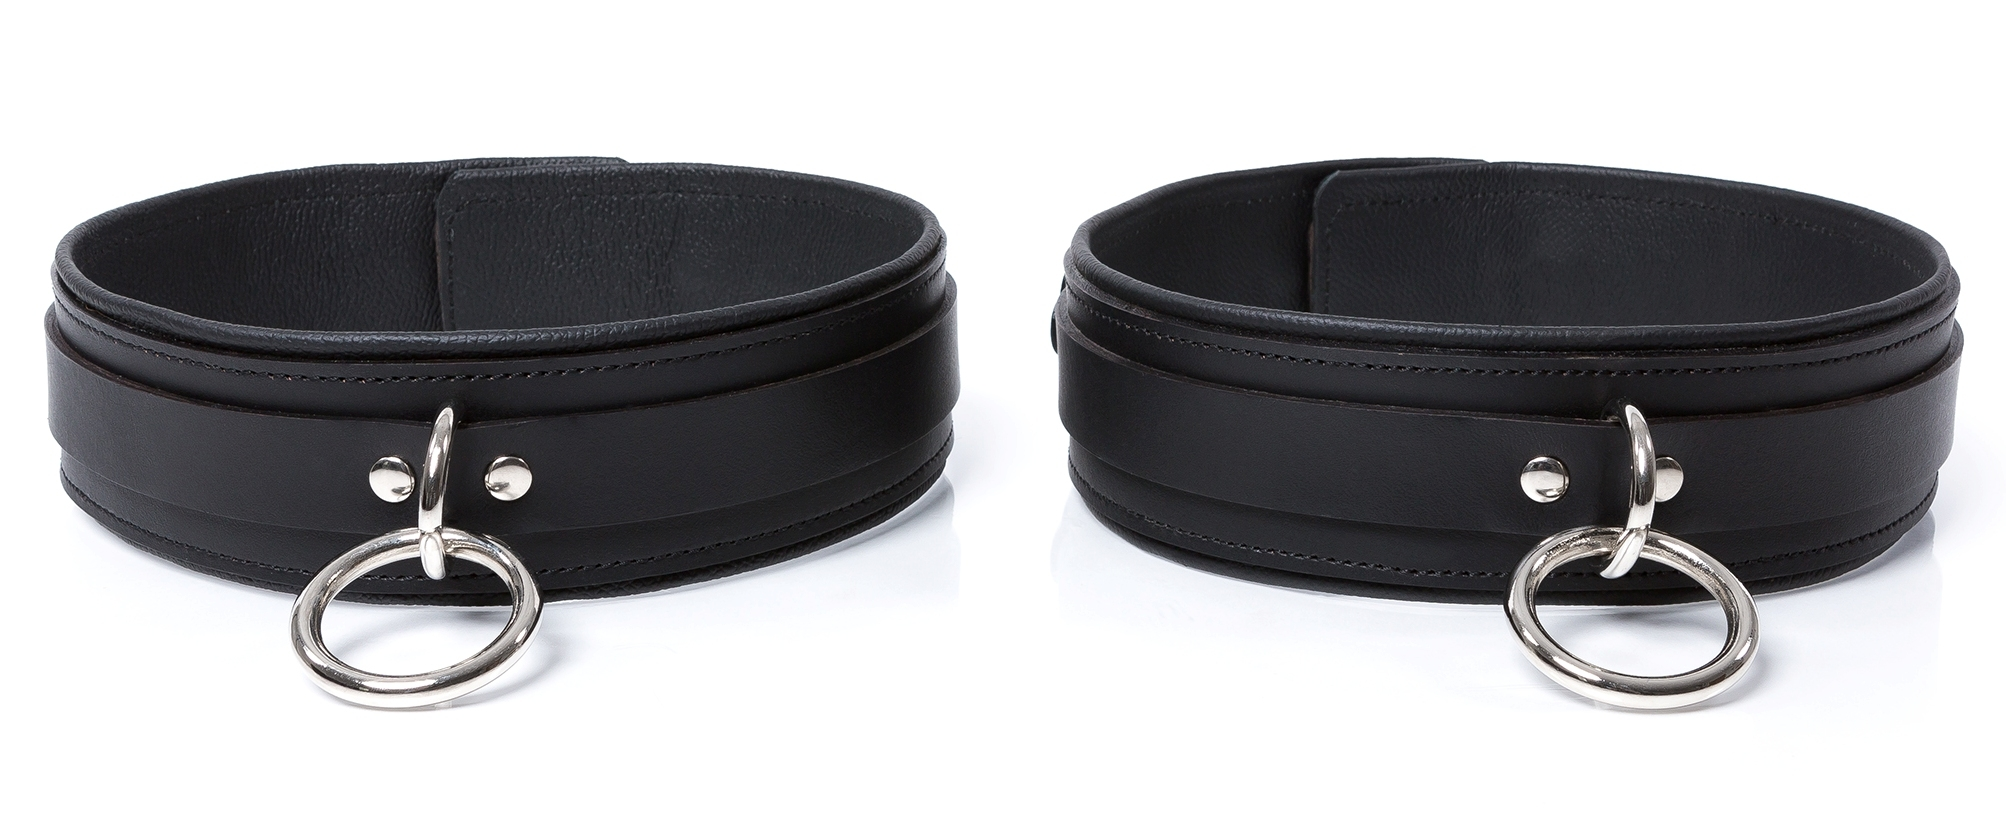 Bdsm gear collars